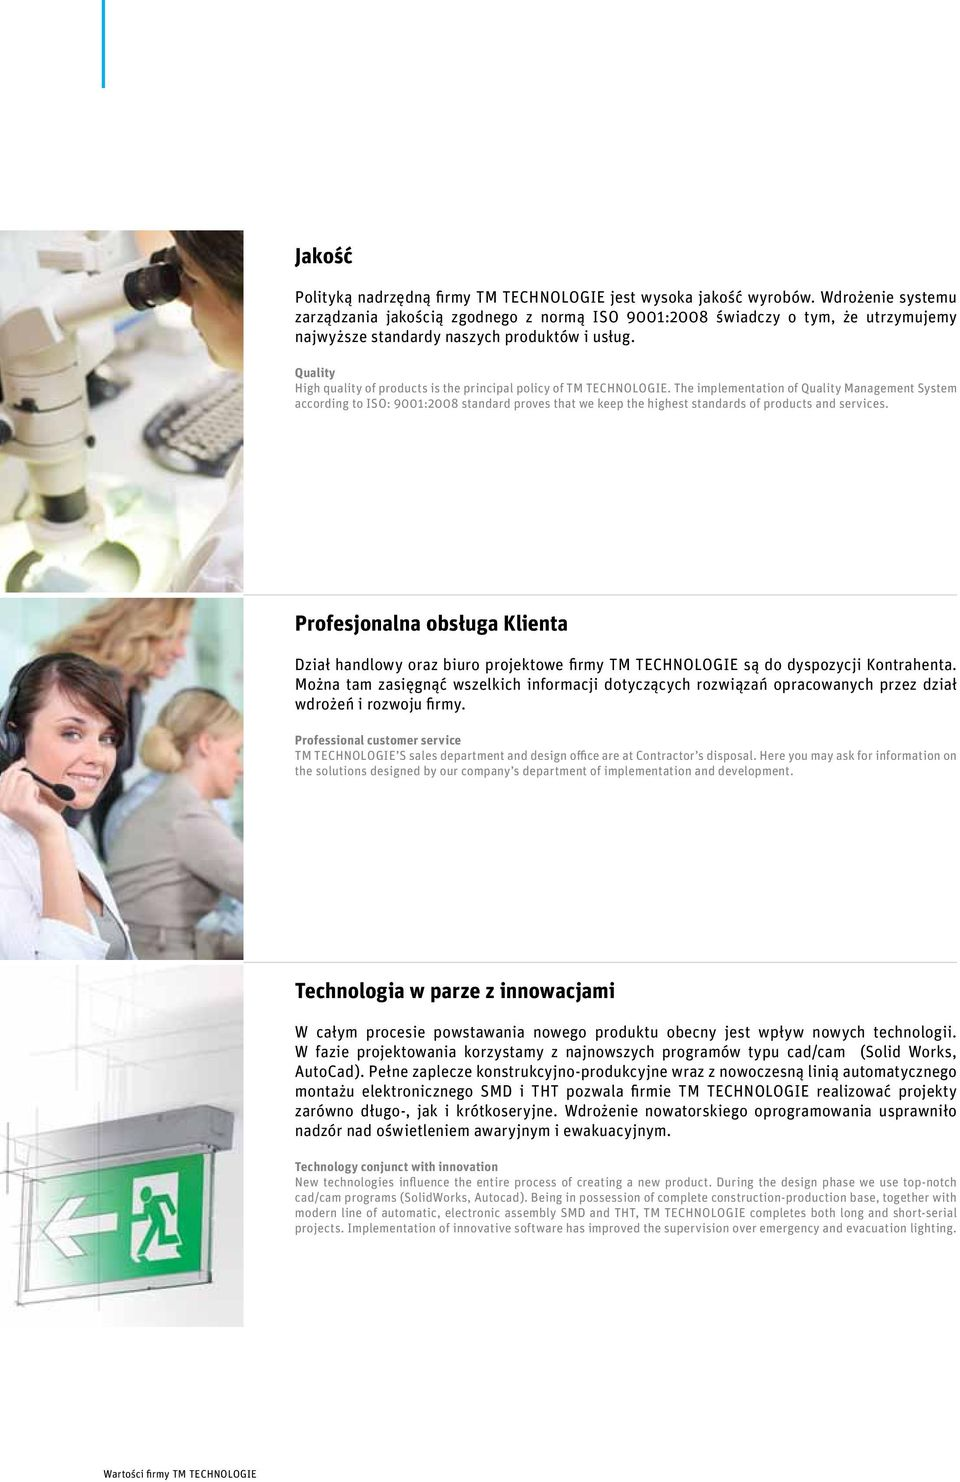 Quality High quality of products is the principal policy of tm technologie.